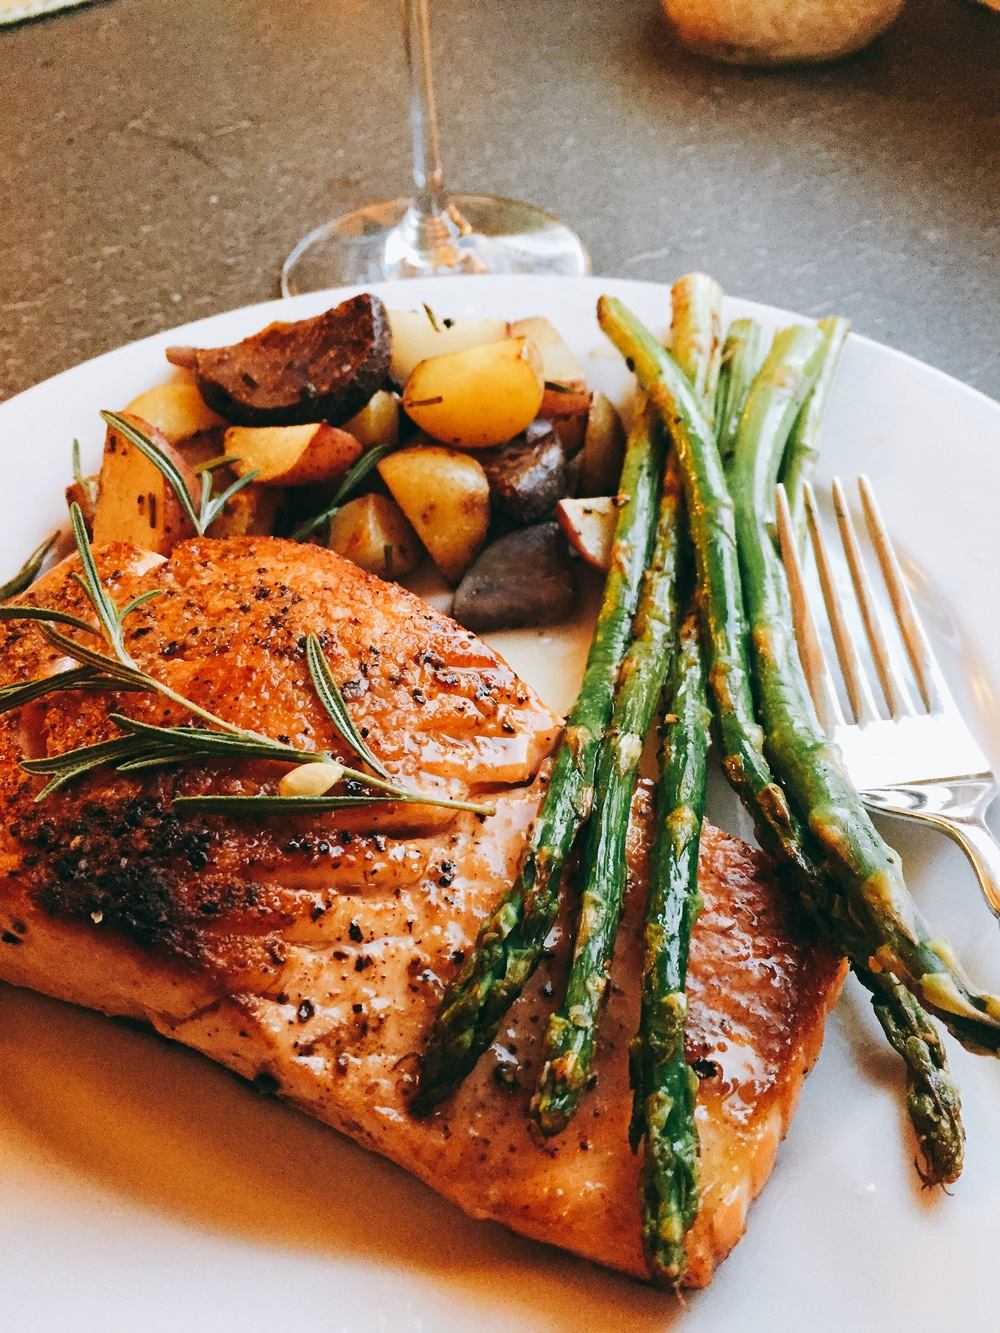 Grilled wild salmon with asparagus and roasted potatoes for Fish and asparagus